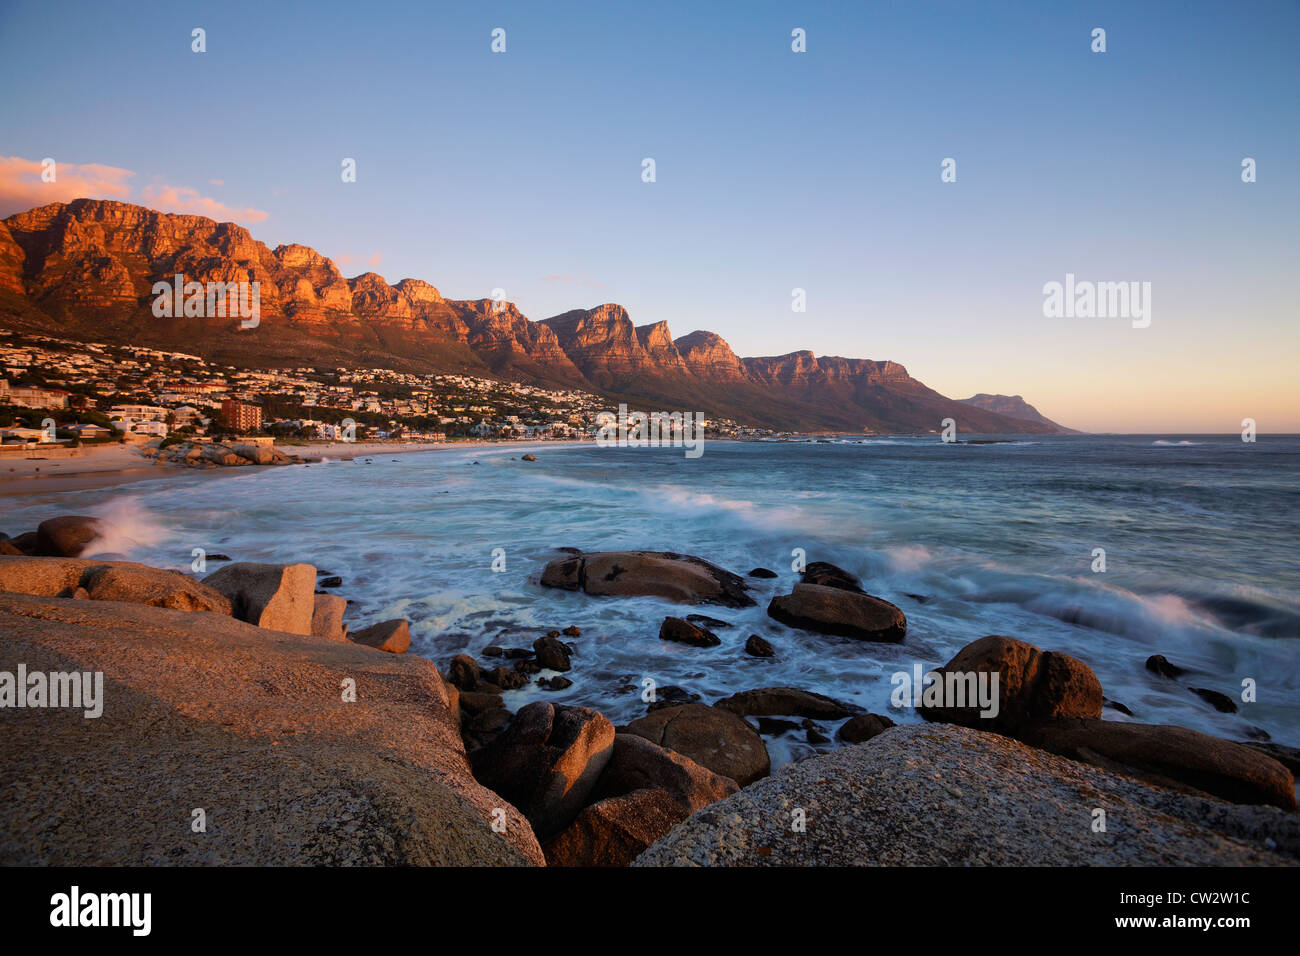 Camps Bay beach with the view of the Twelve Apostles mountain range.Cape Town.South Africa - Stock Image